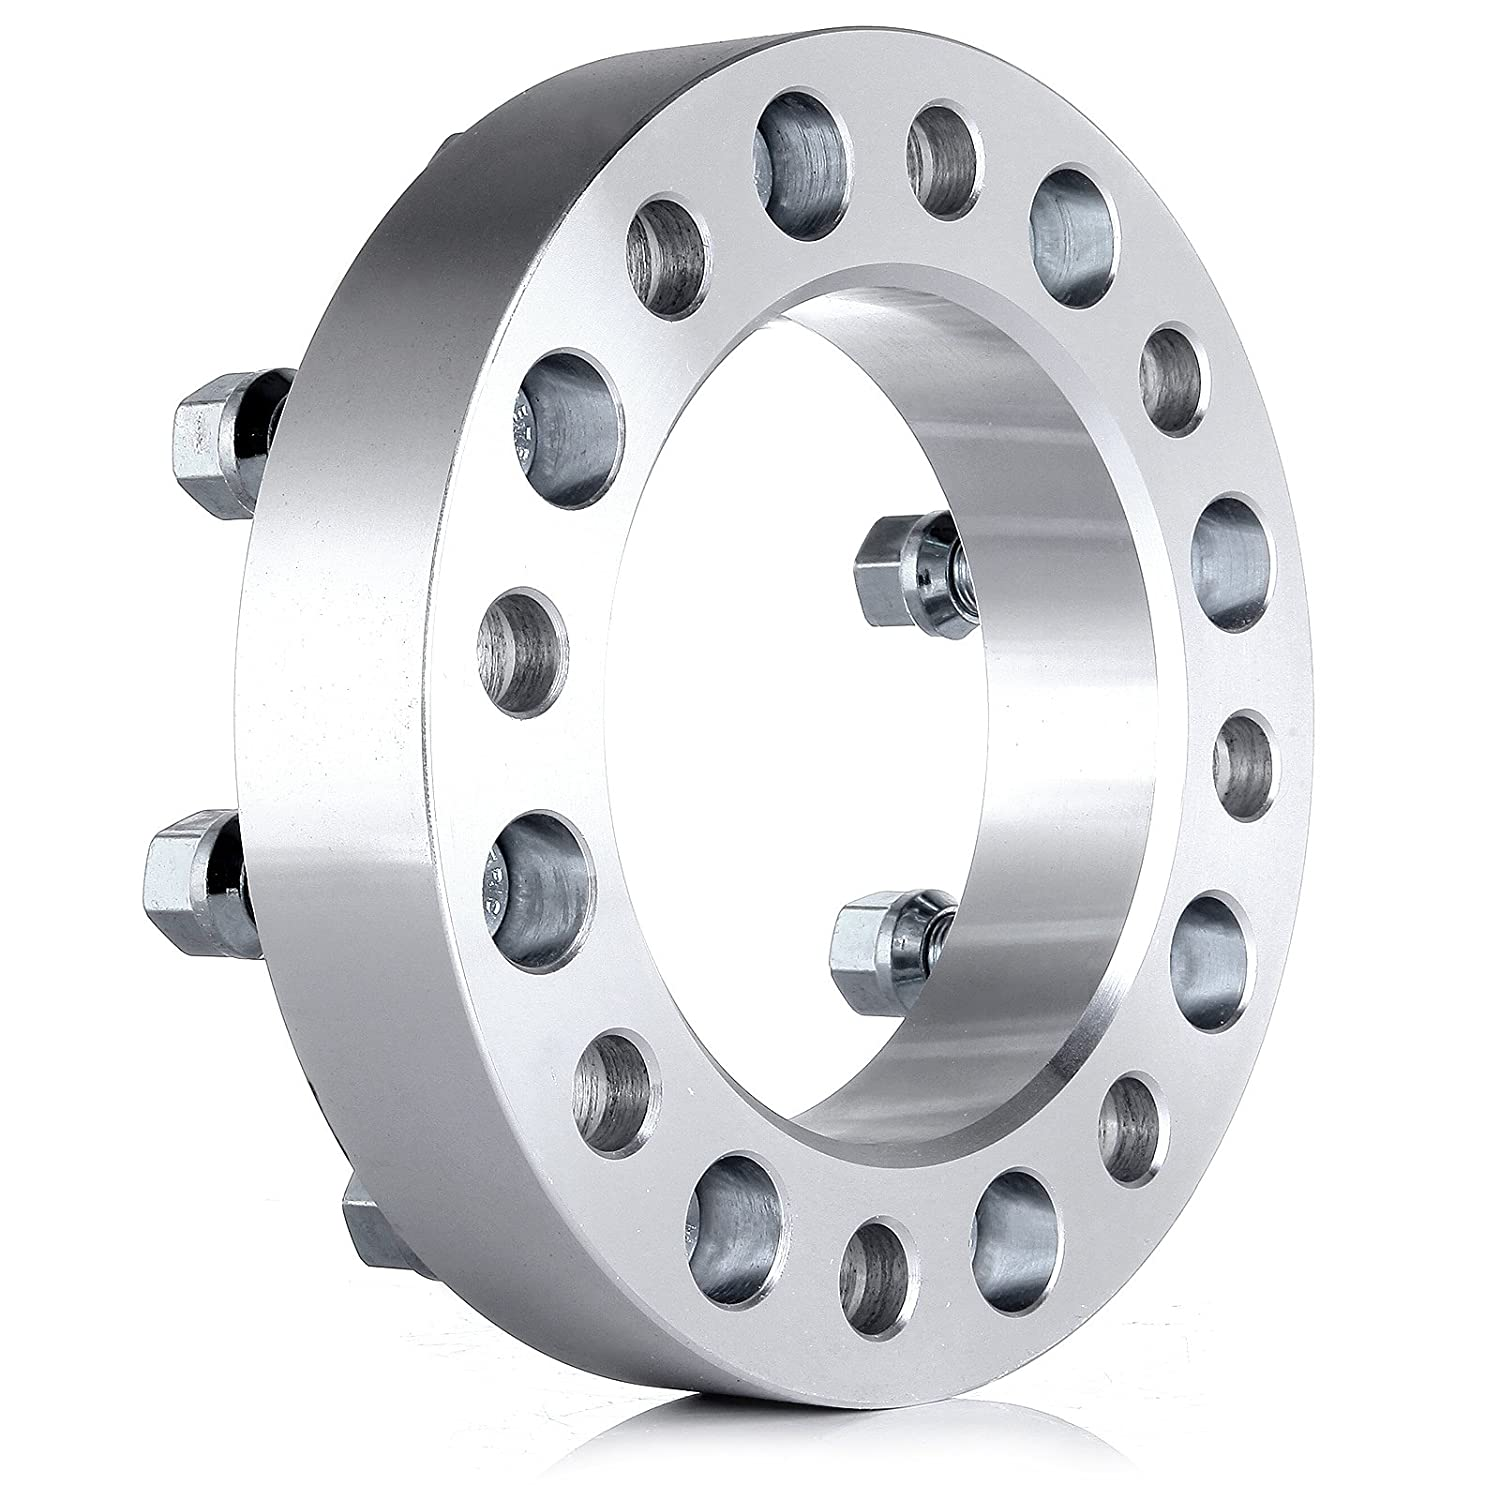 126.15 mm 8x165.1 mm Replacement fit for 99-10 Chevy Silverado GMC Sierra 1500HD 2500HD 3500HD Thread Size 14x1.5 ECCPP 8 Lug Wheel Spacer Adapters 1.5 8x6.5 to 8x6.5 4PC 1.5|8x6.5